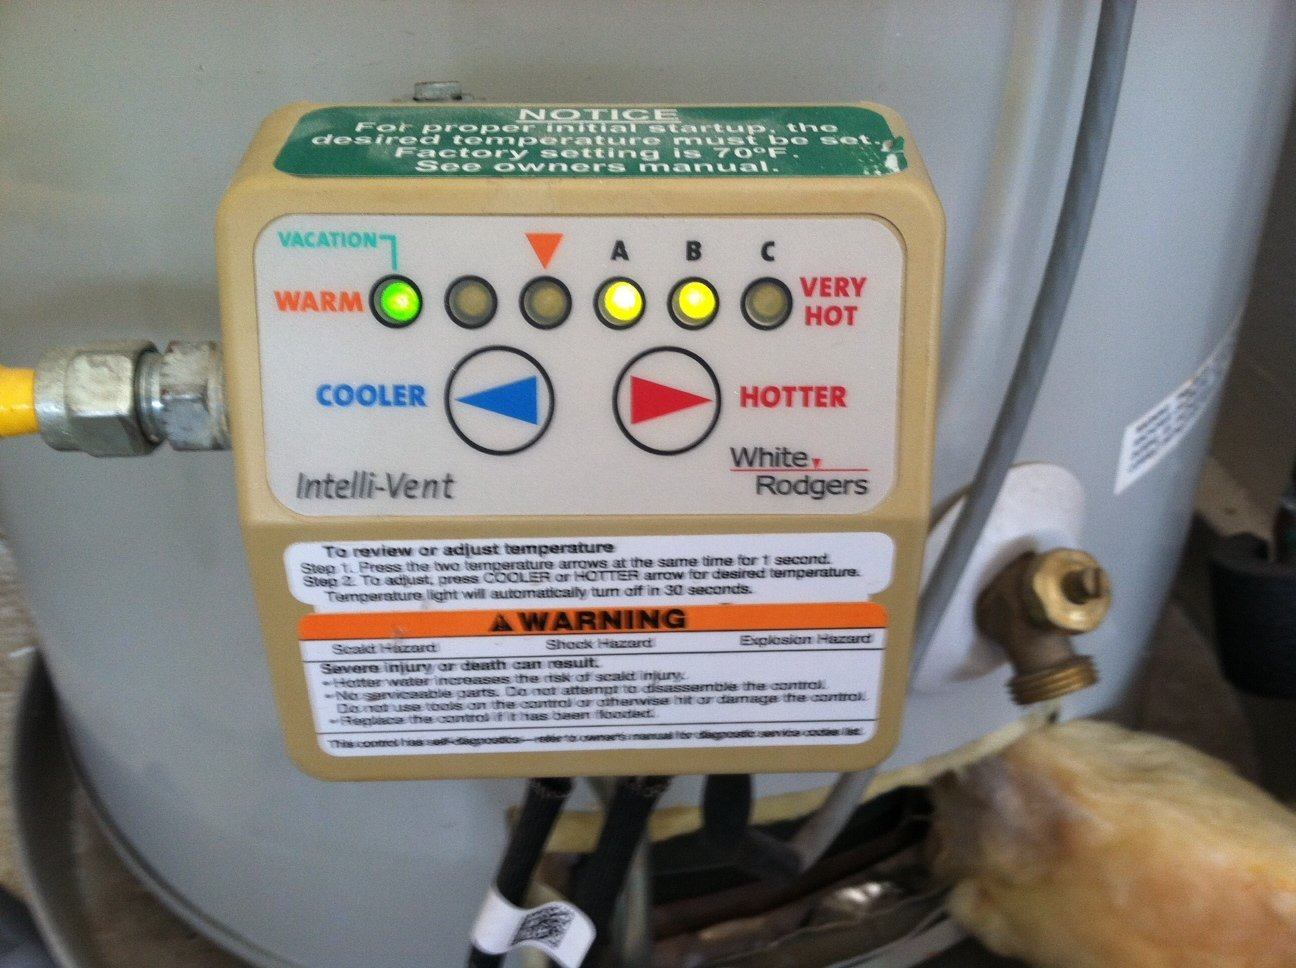 How To Turn Vacation Mode Off On Ao Smith Water Heater